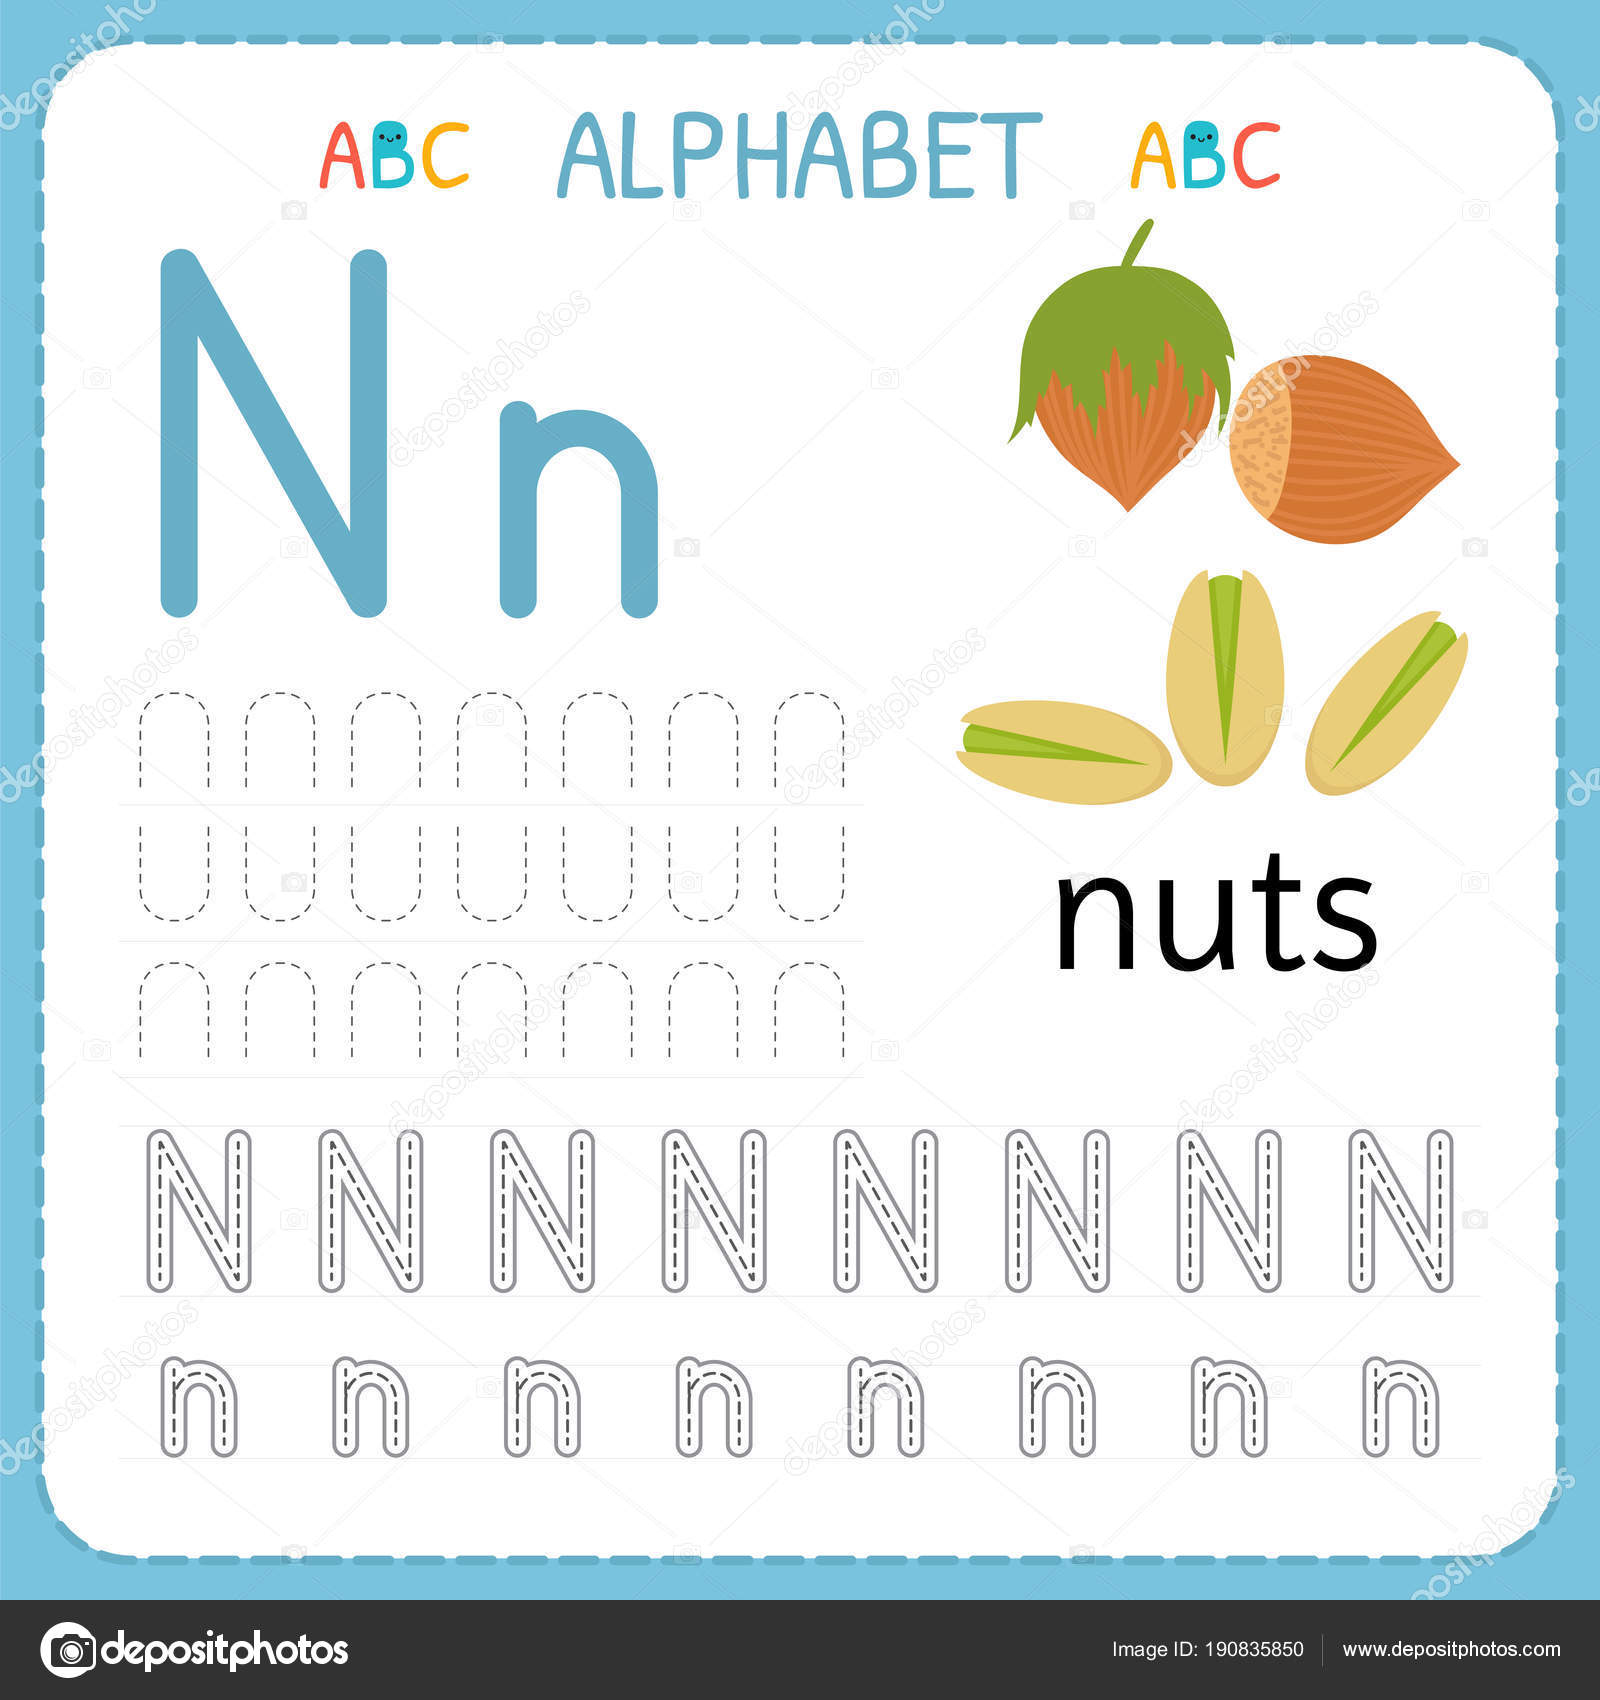 Alphabet Tracing Worksheet For Preschool And Kindergarten Writing Practice Letter N Exercises